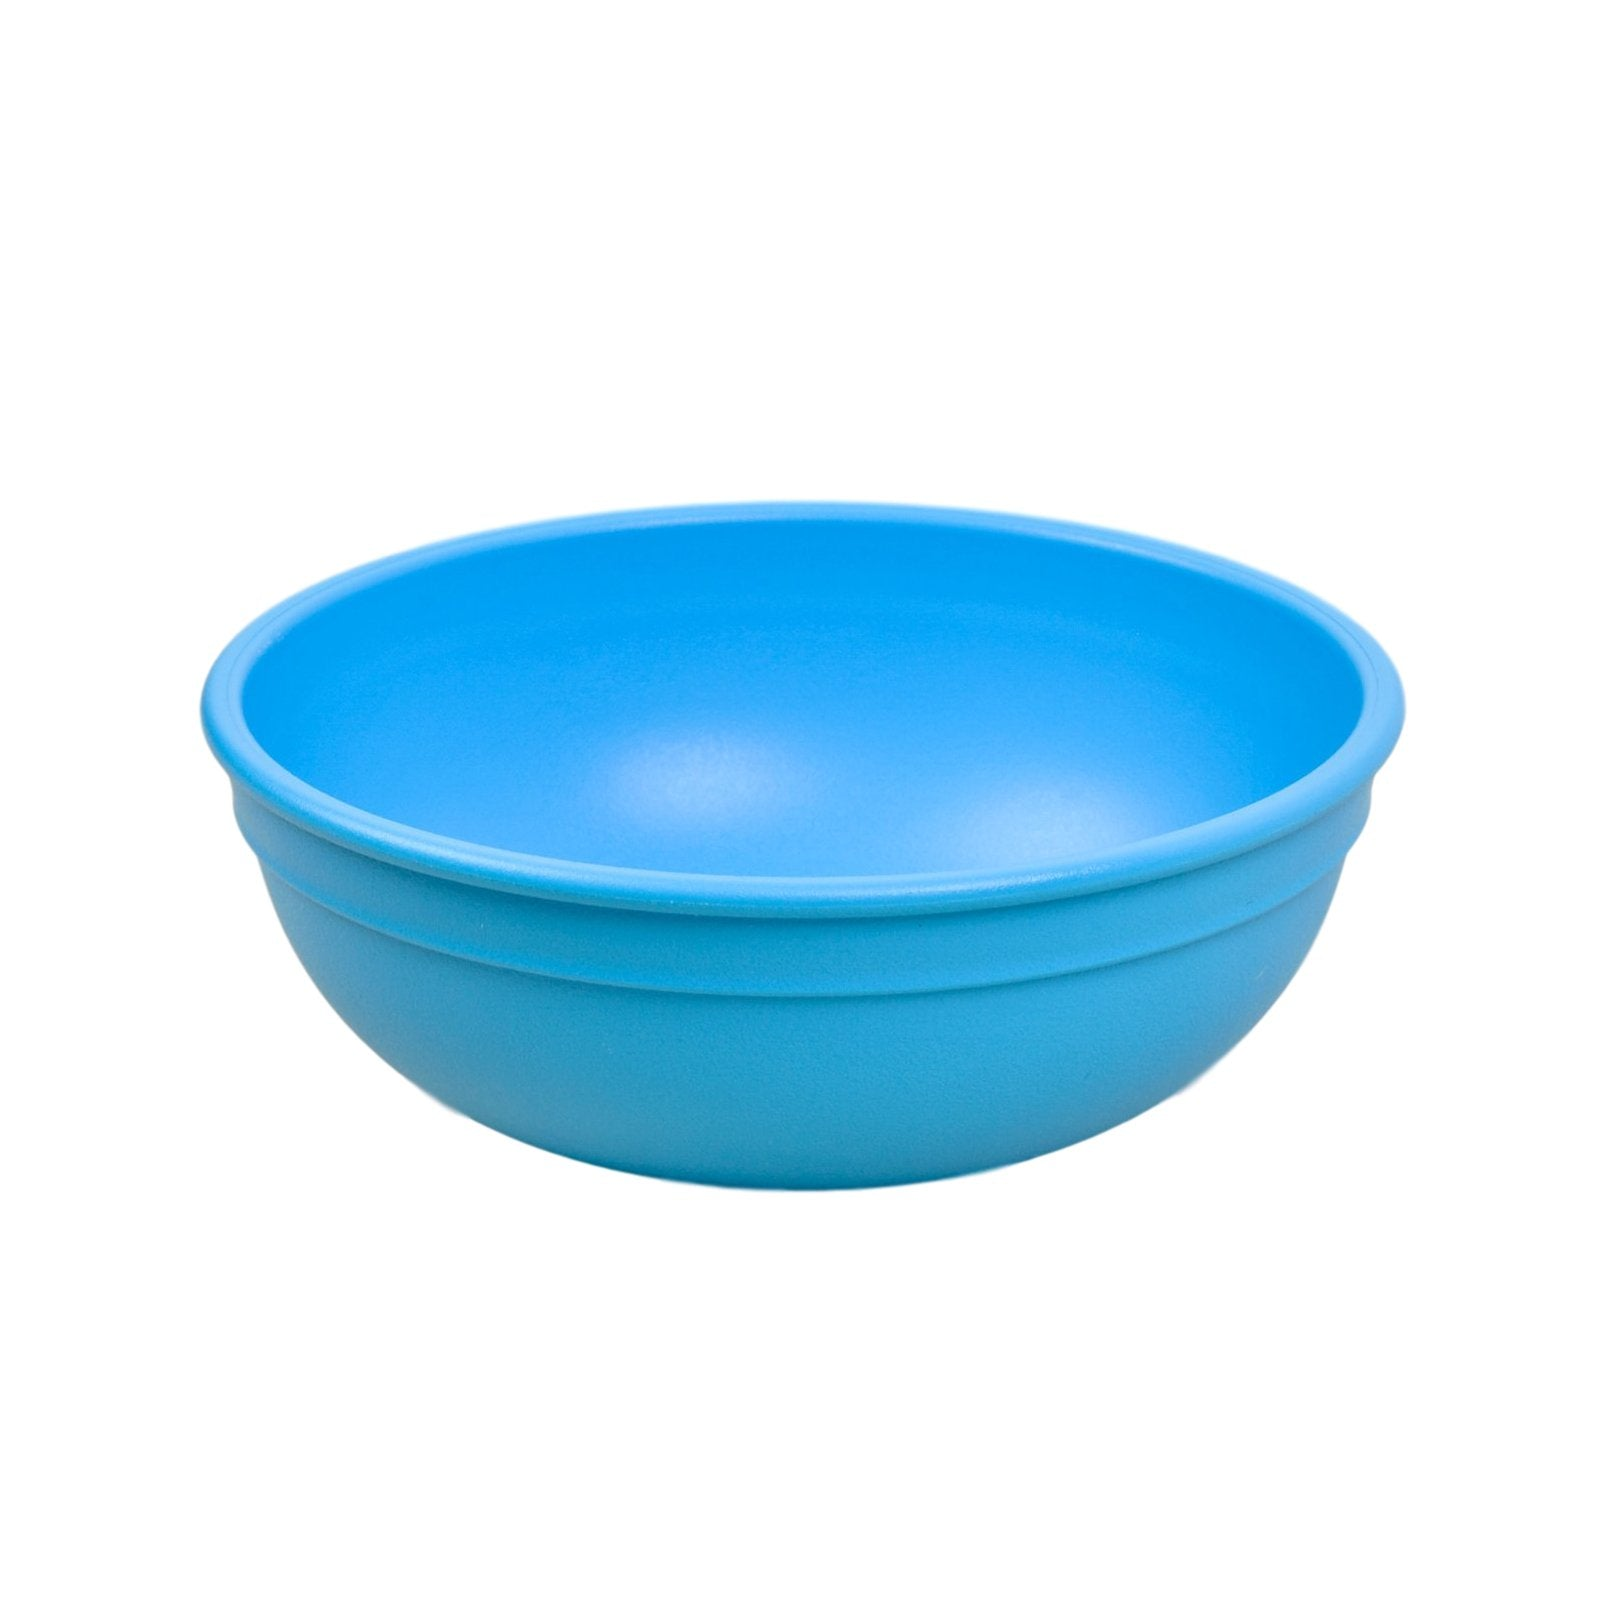 Replay Large Bowl Replay Dinnerware Sky Blue at Little Earth Nest Eco Shop